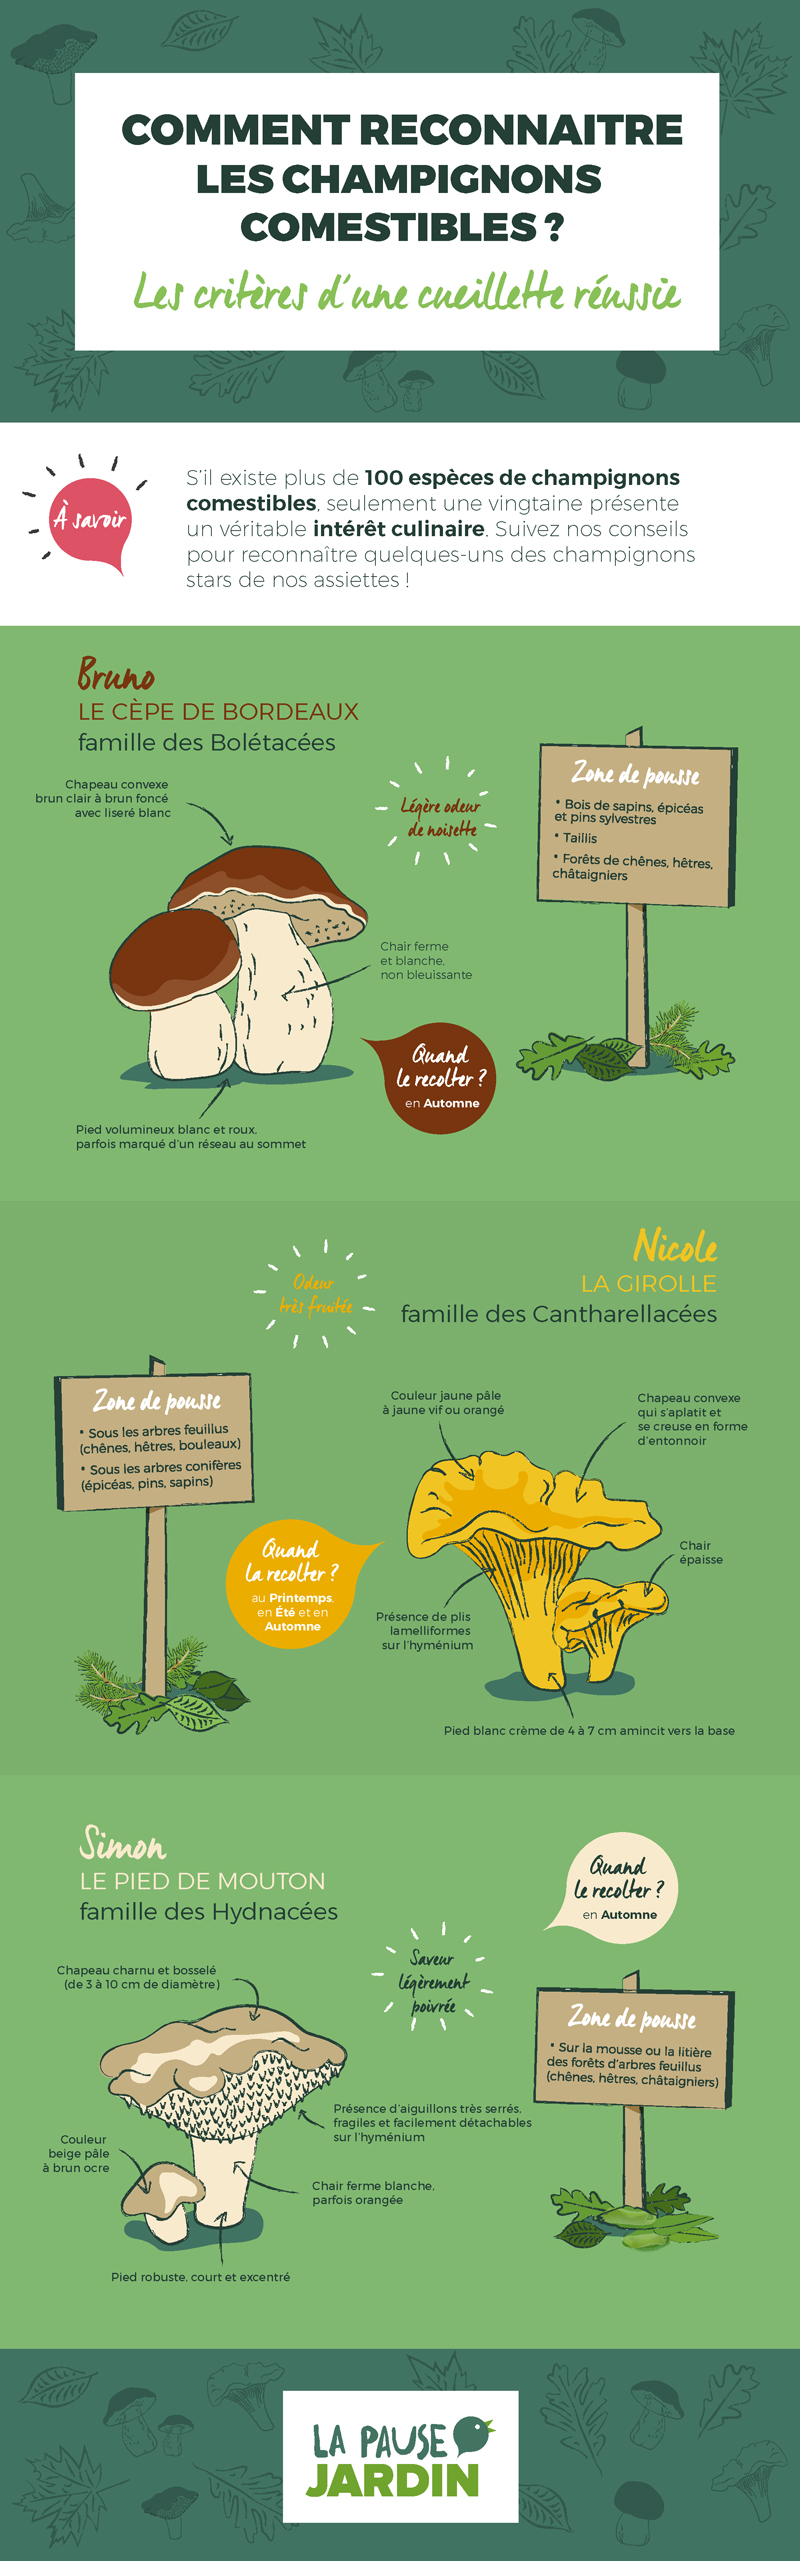 graphisme-infographie-champignons-bycamille